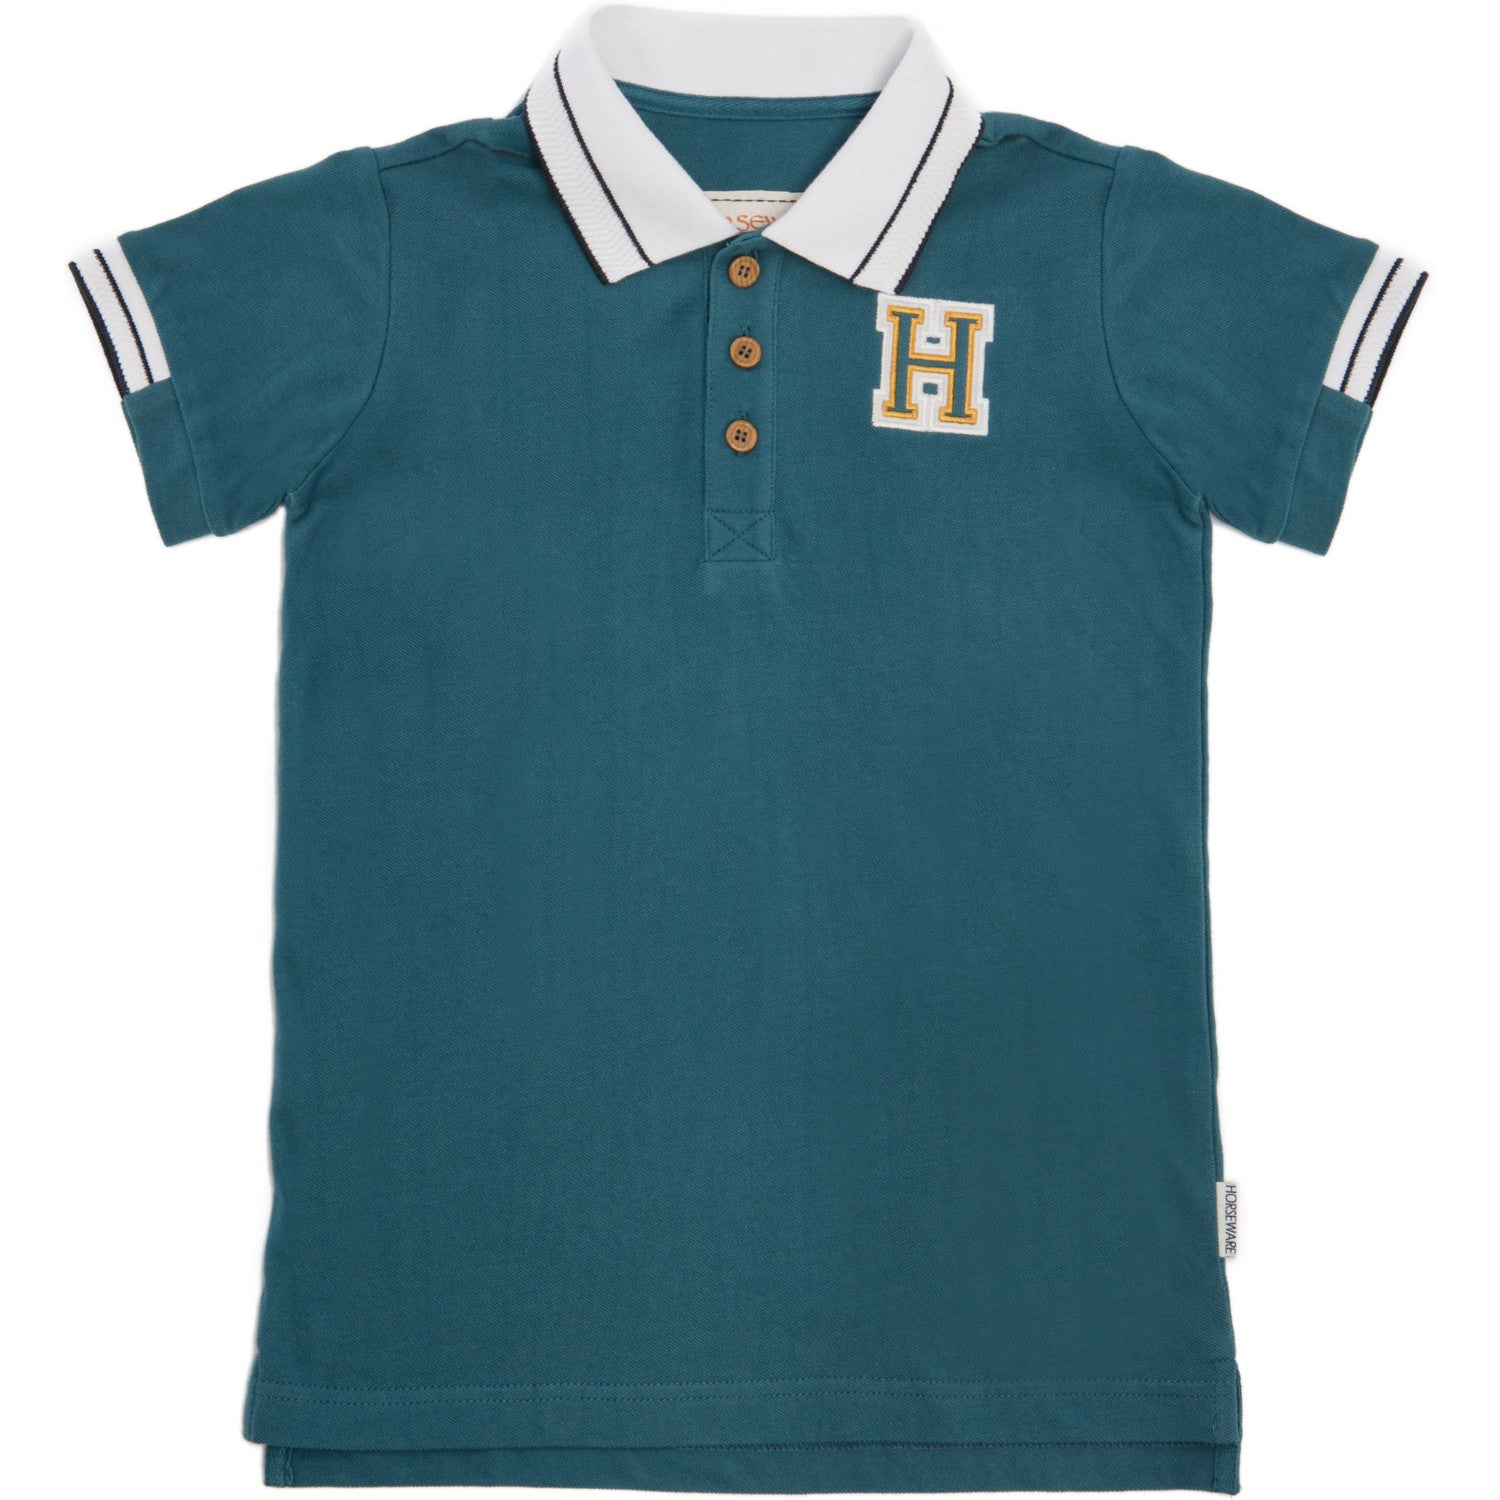 Horseware Pique Childrens Polo Shirt